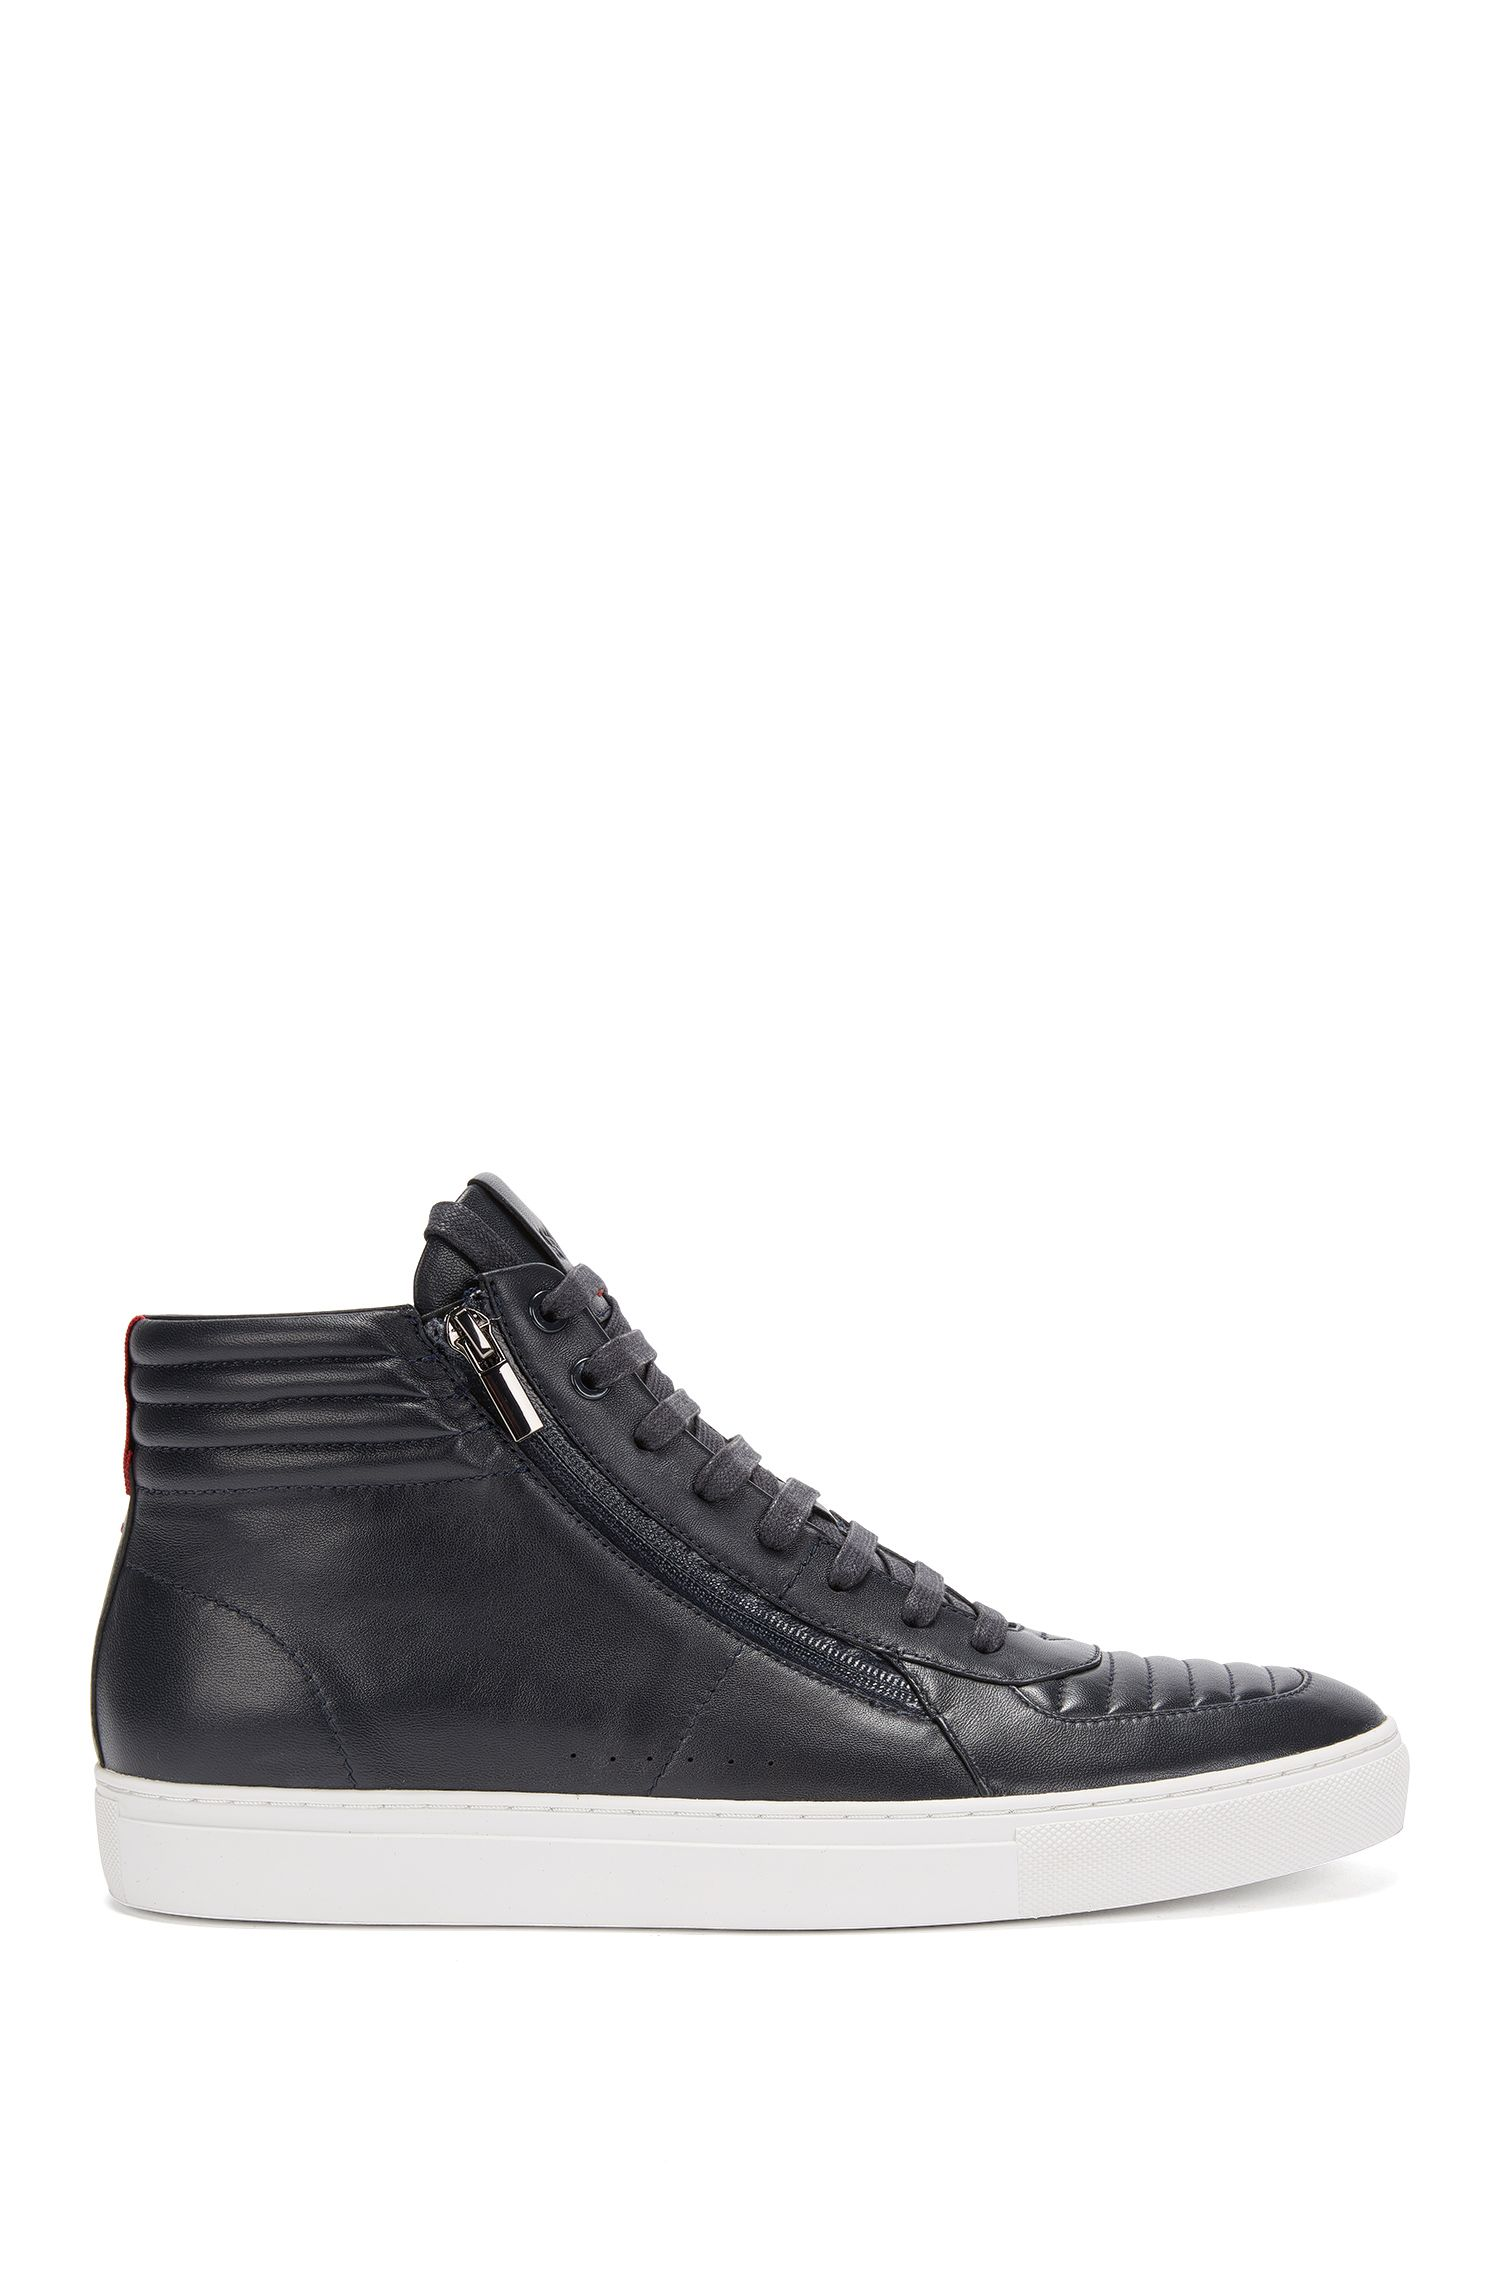 High-top lace-up trainers in padded nappa leather